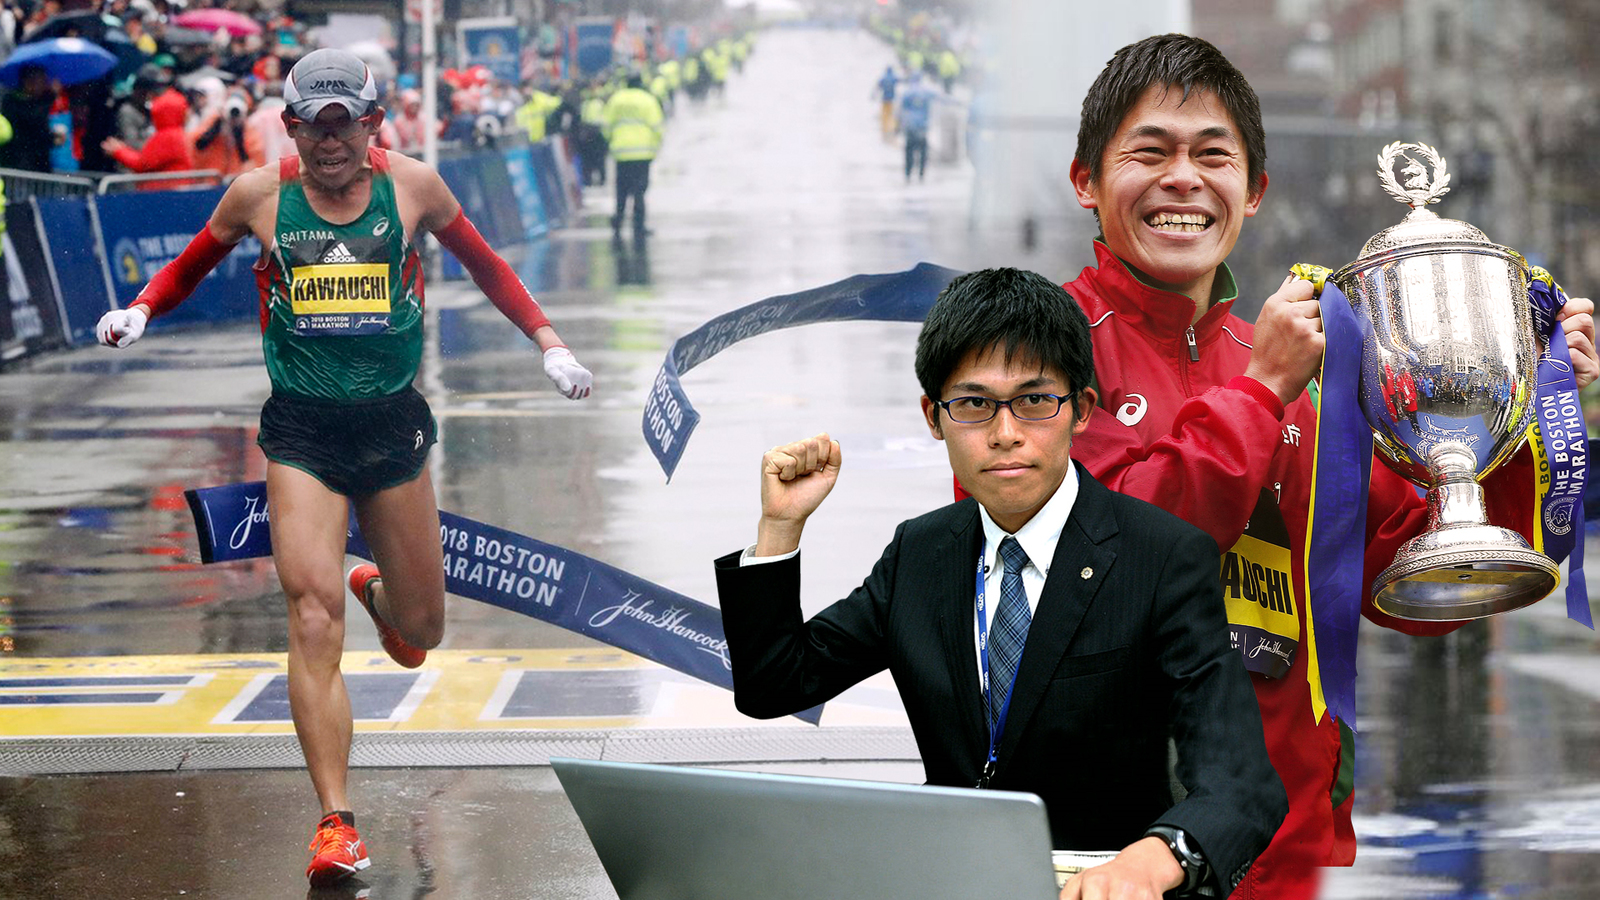 Yuki Kawauchi before returning home to Boston 2018 in the rain and wind was an office worker.